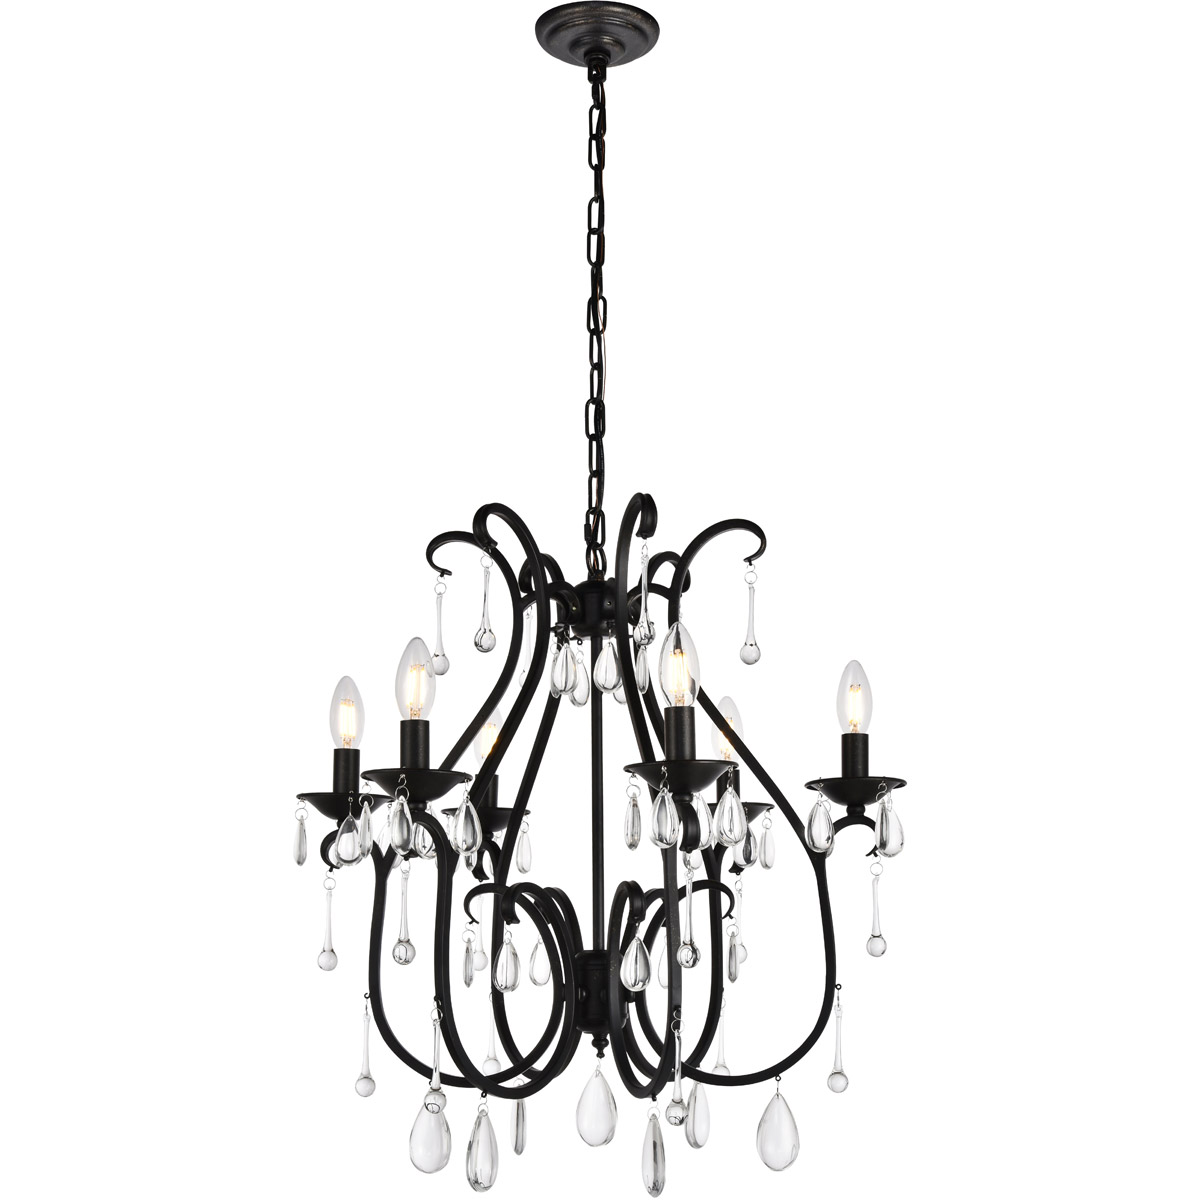 Black Wrought Iron Kitchen Light Fixtures 6 Light 25